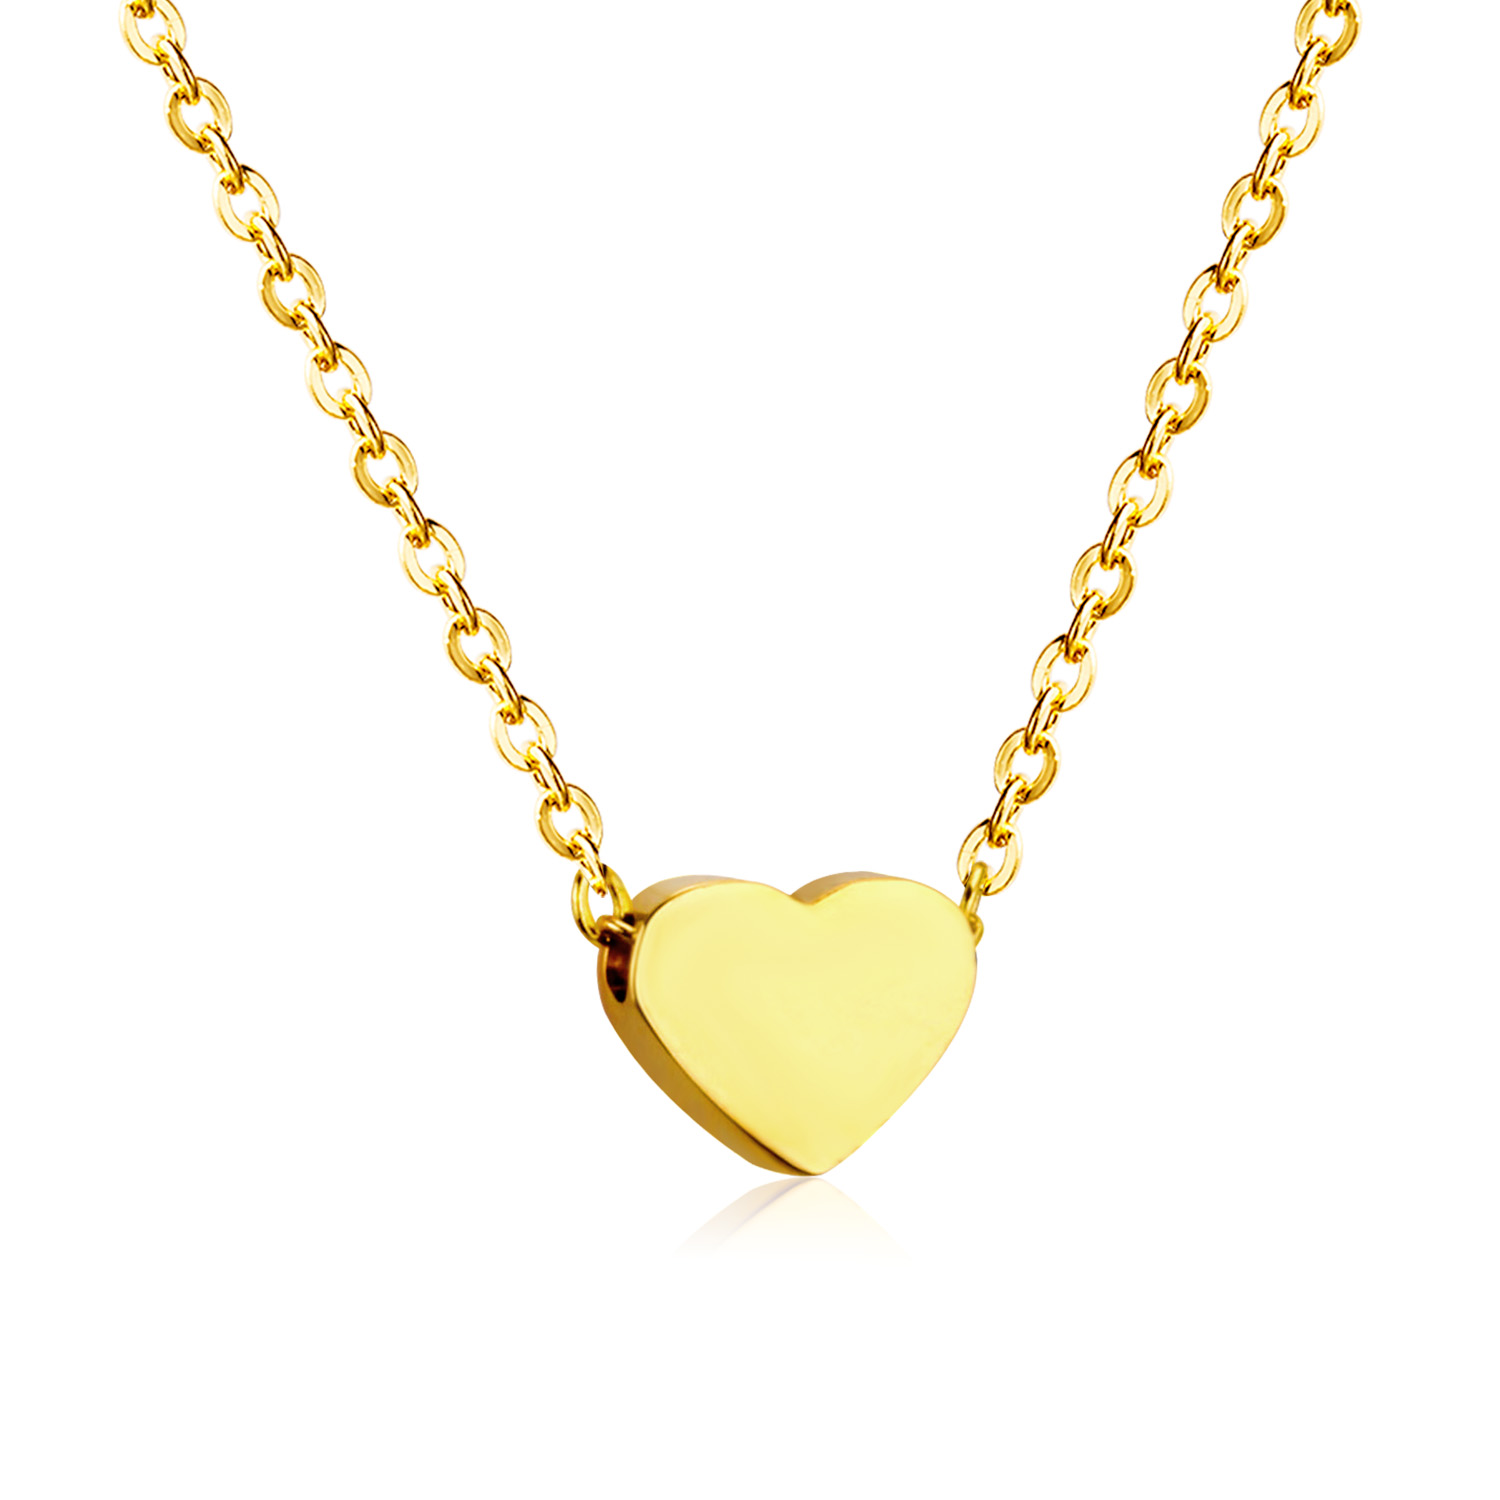 LUXUKISSKIDS Heart Pendants Necklaces Stainless Steel Choker Link Chain Gold Women/Men Necklace set hot Jewelry collares collier